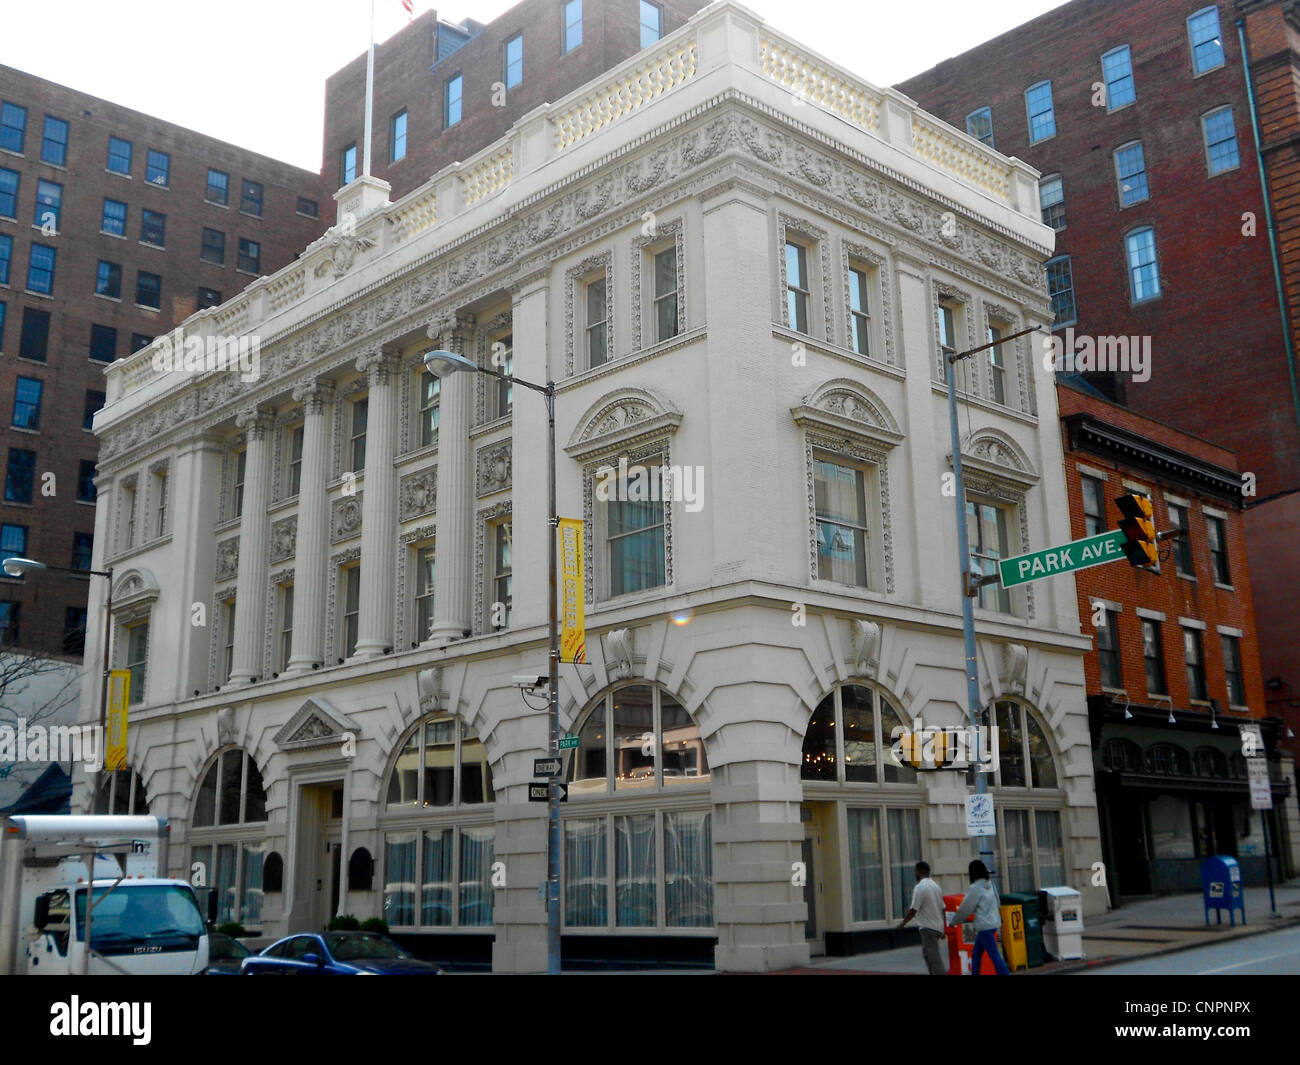 Brewers Exchange on the NRHP since March 28, 1985. At 20 Park Ave. in central Baltimore, Maryland - Stock Image